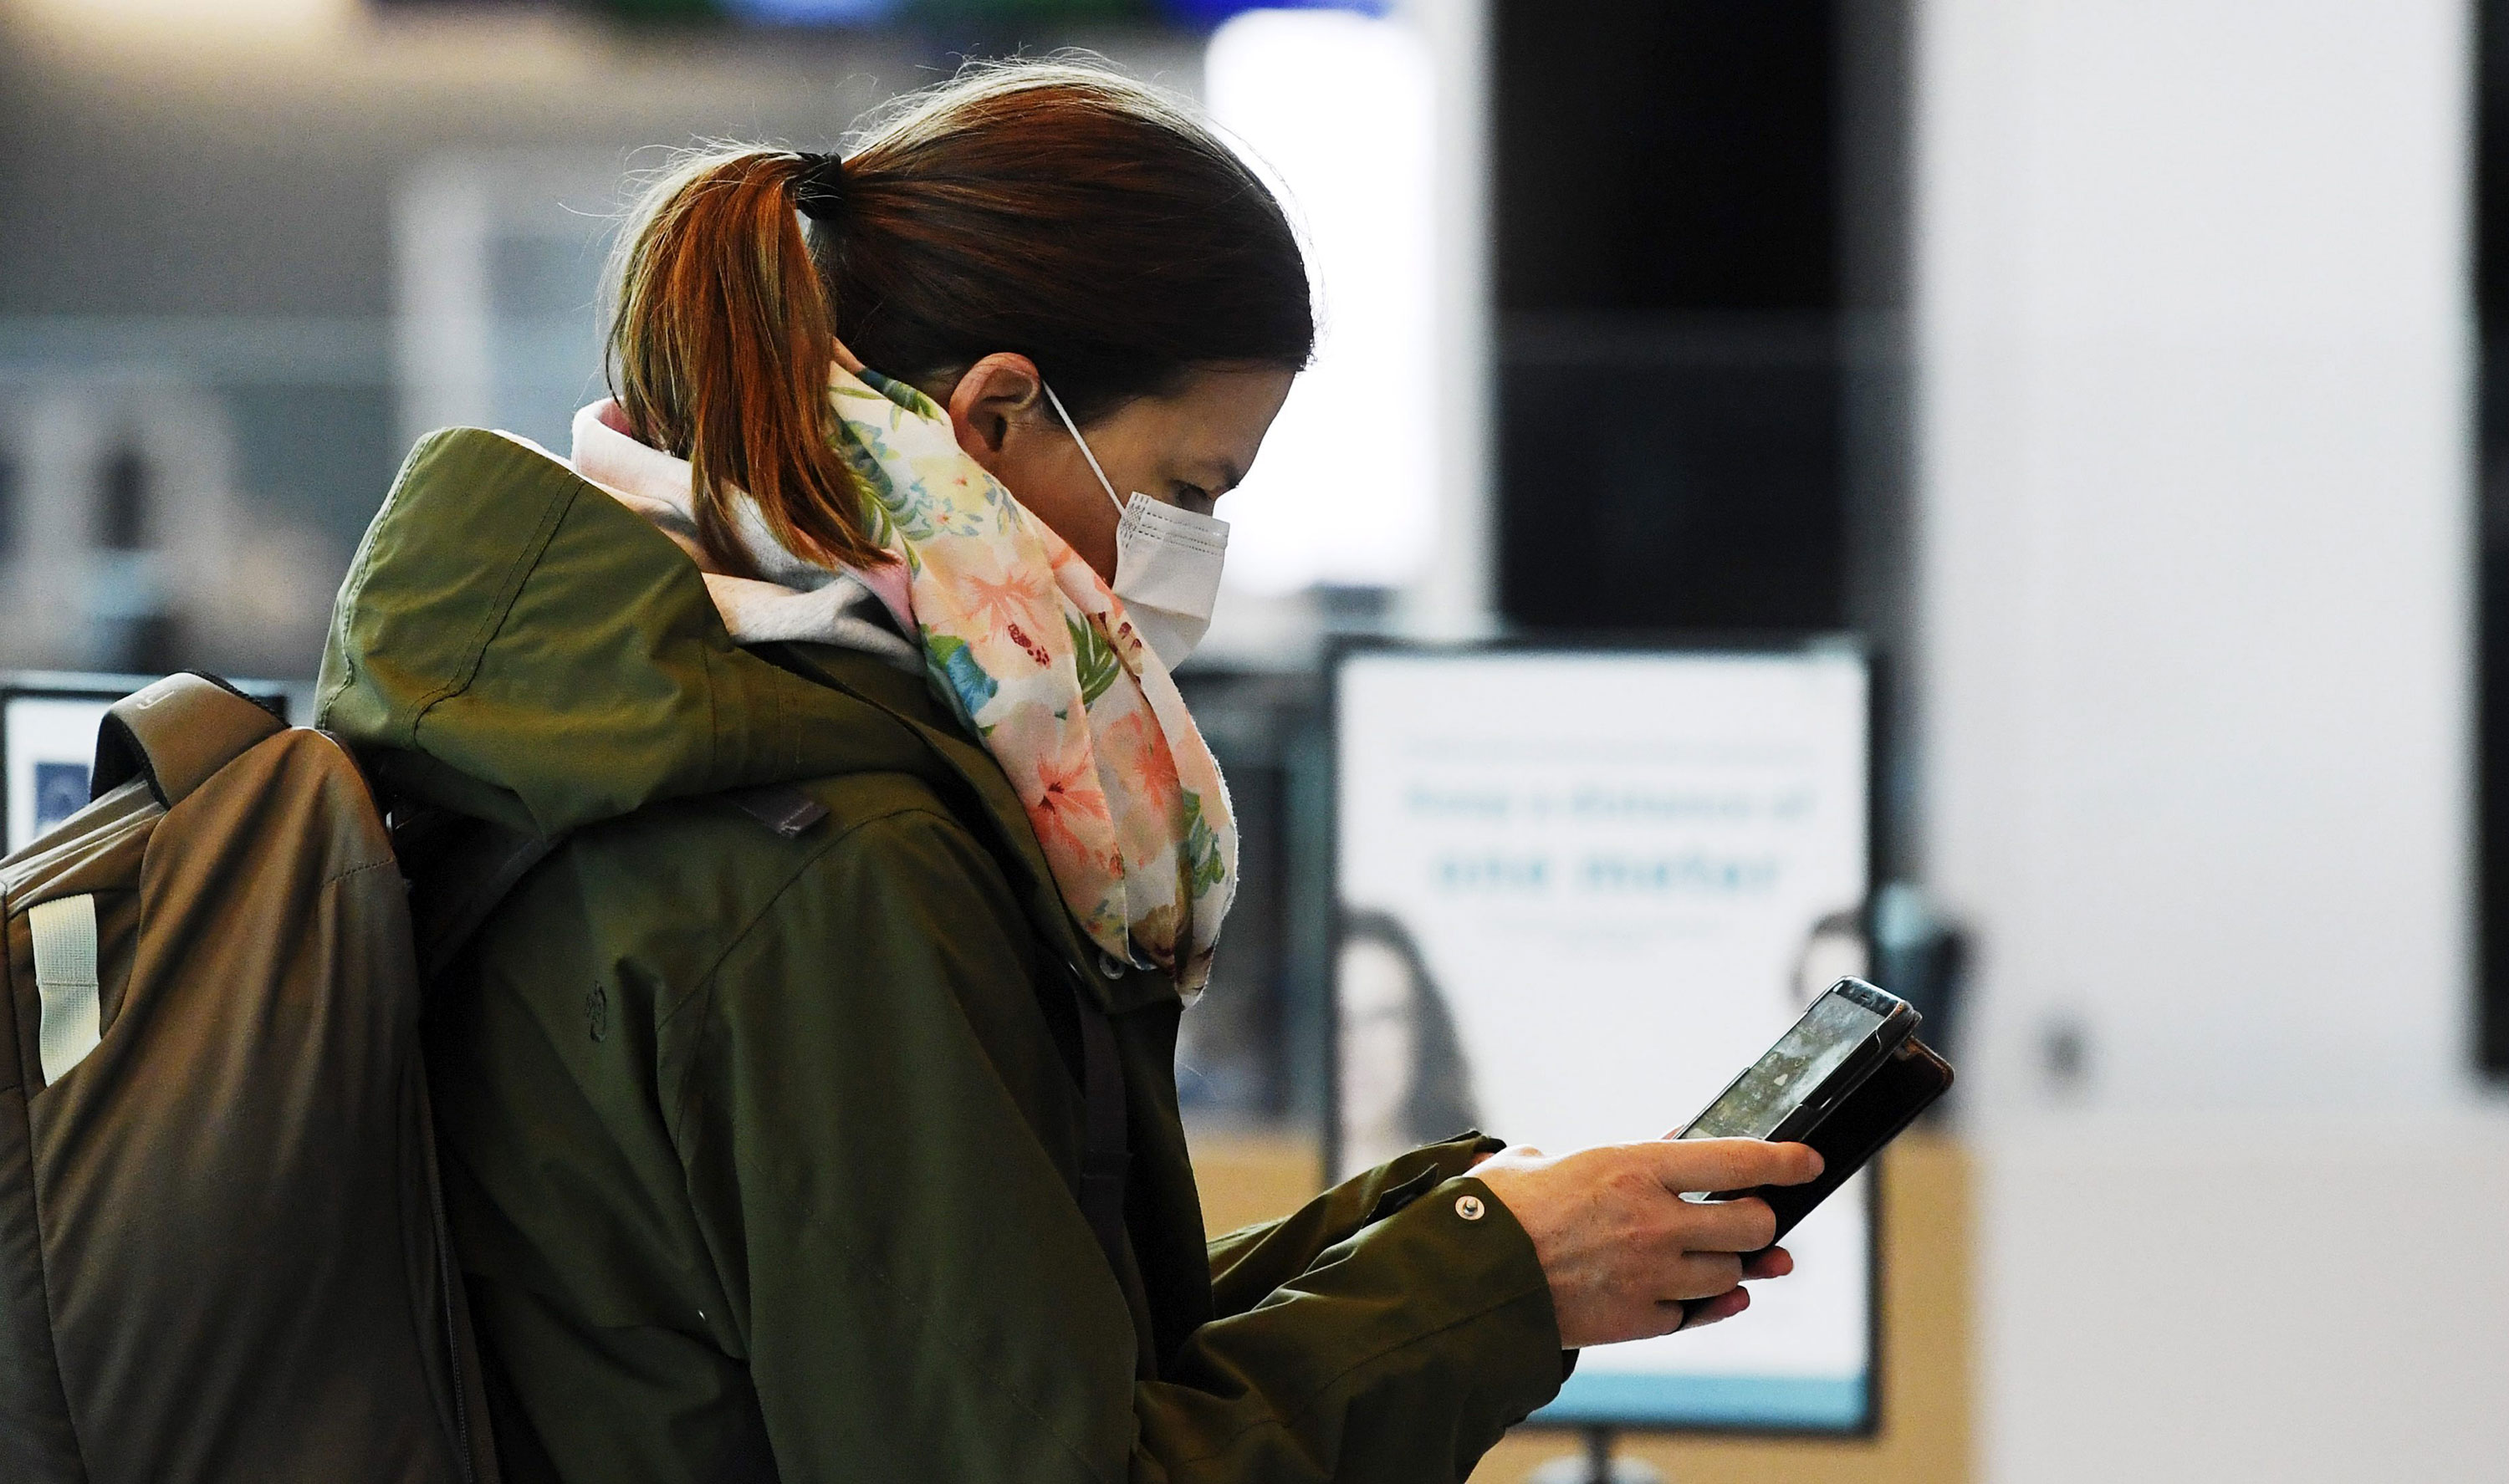 A passenger looks at her phone at the Helsinki International Airport in Vantaa, Finland, on May 13.